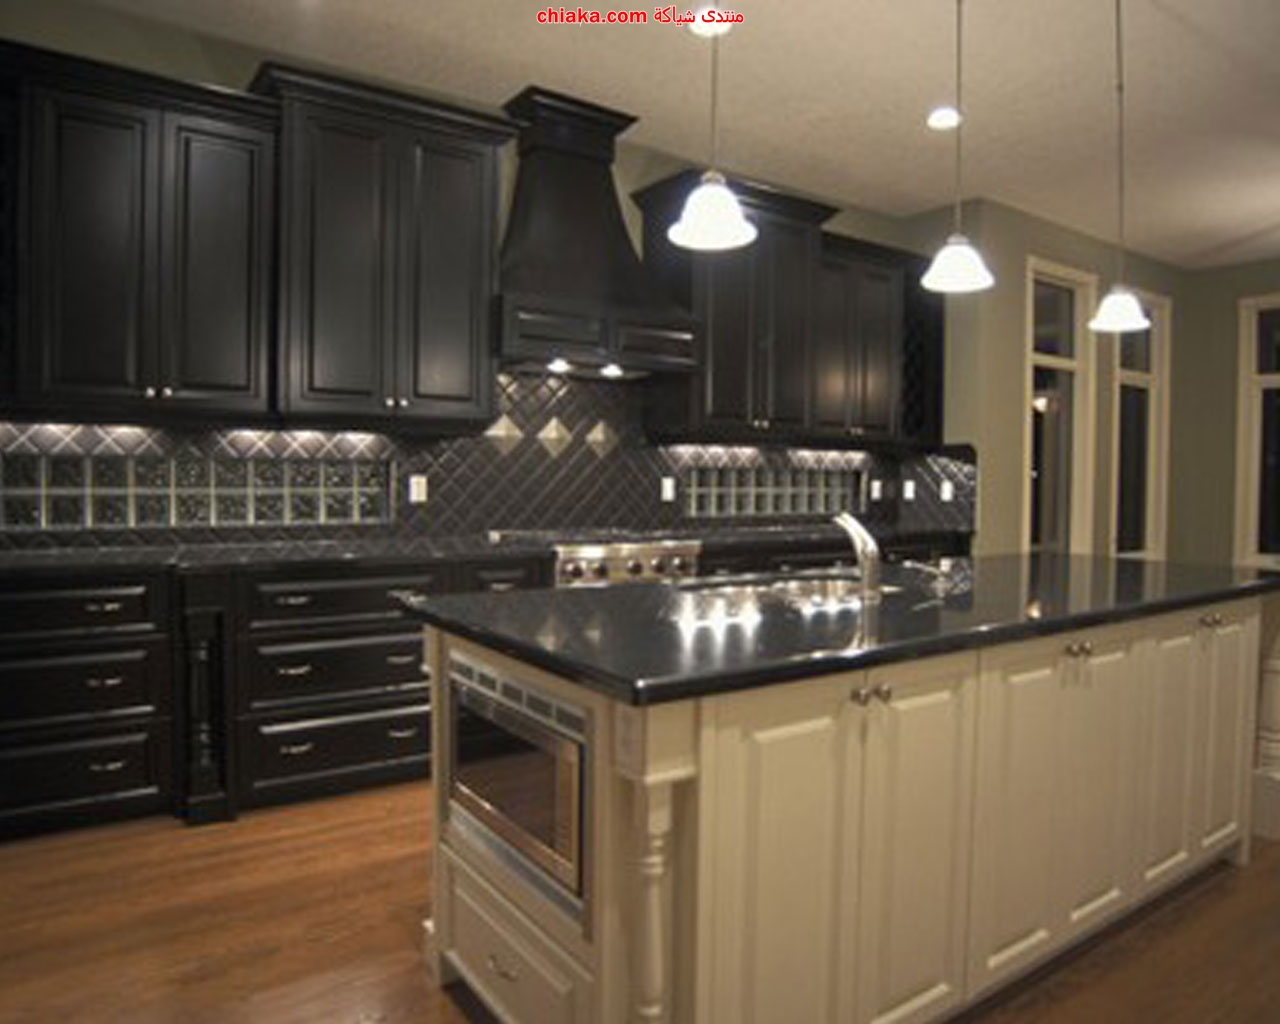 colors for a kitchen with dark cabinets ديكورات مطابخ 2013 13710